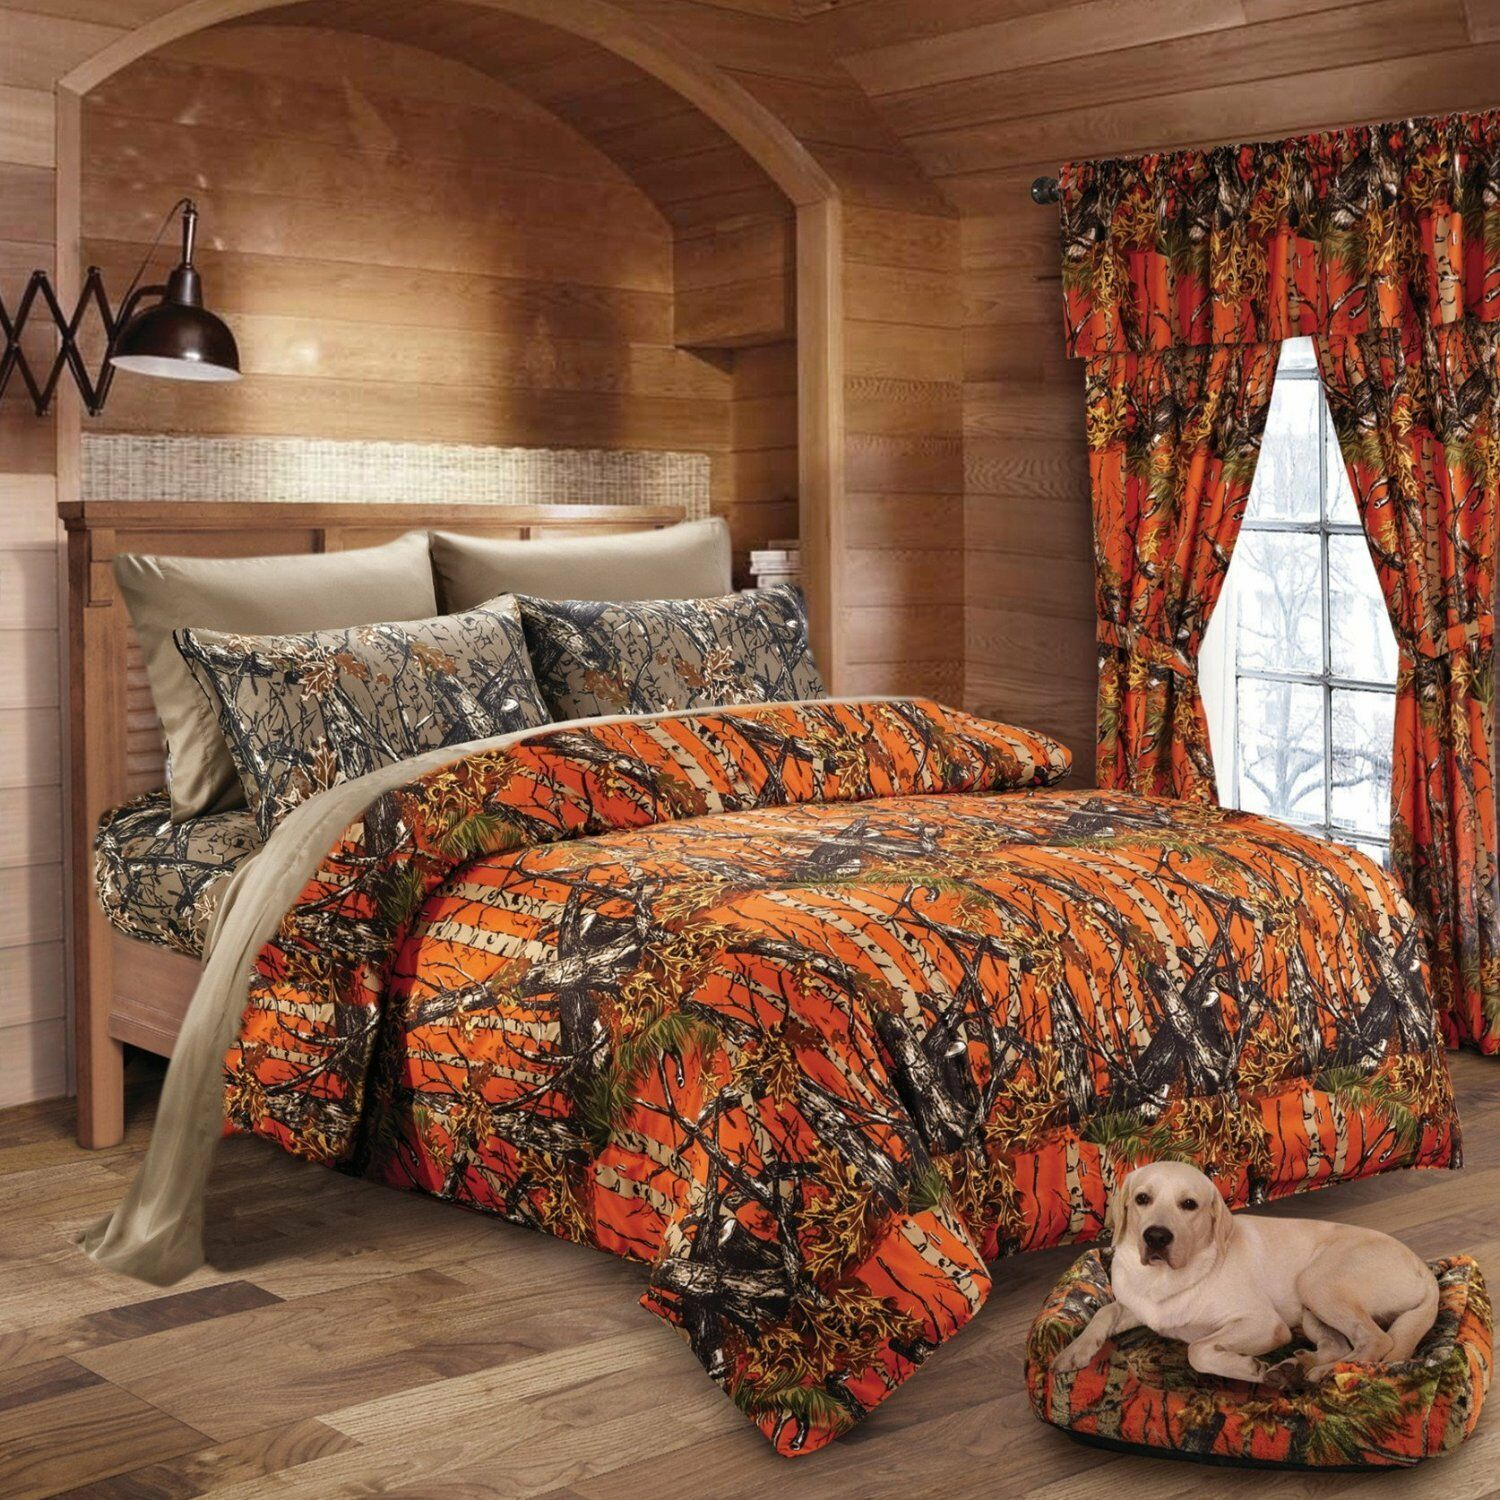 7 PC Orange CAMO CAMO CAMO COMFORTER  WITH NATURAL SHEET SET QUEEN SET CAMOUFLAGE WOODS 0f7d8b